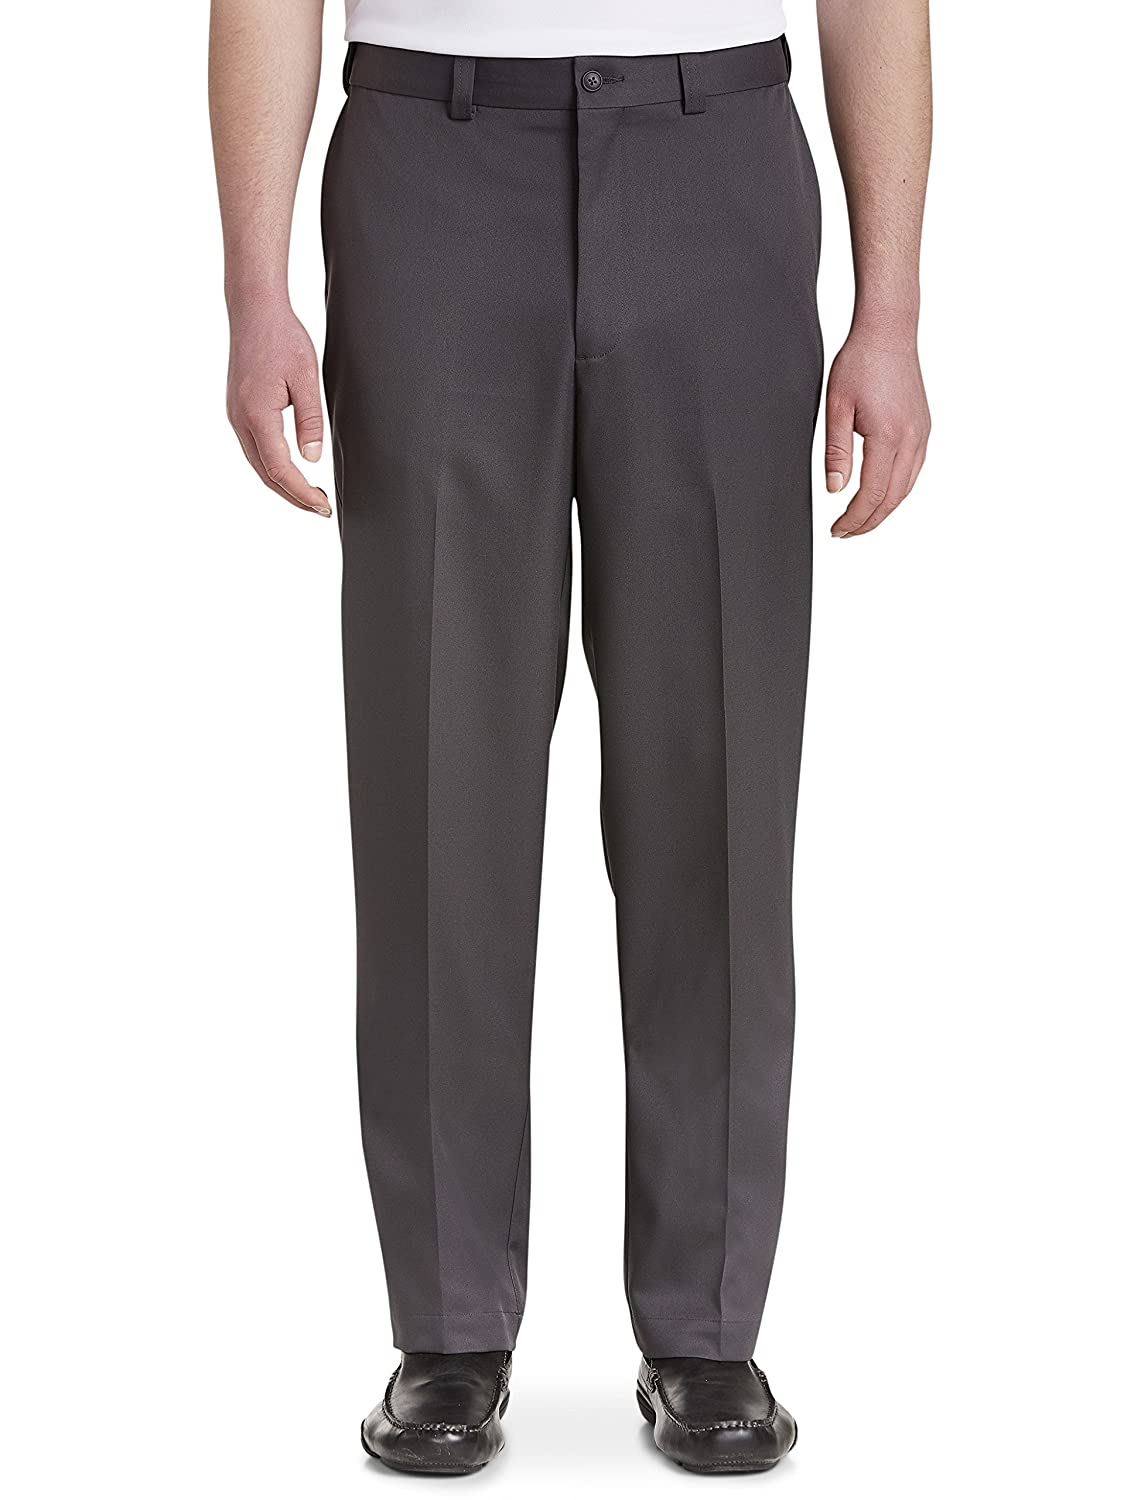 42 X 34 Grey New Improved Fit Oak Hill by DXL Big and Tall Waist-Relaxer Flat-Front Microfiber Pants